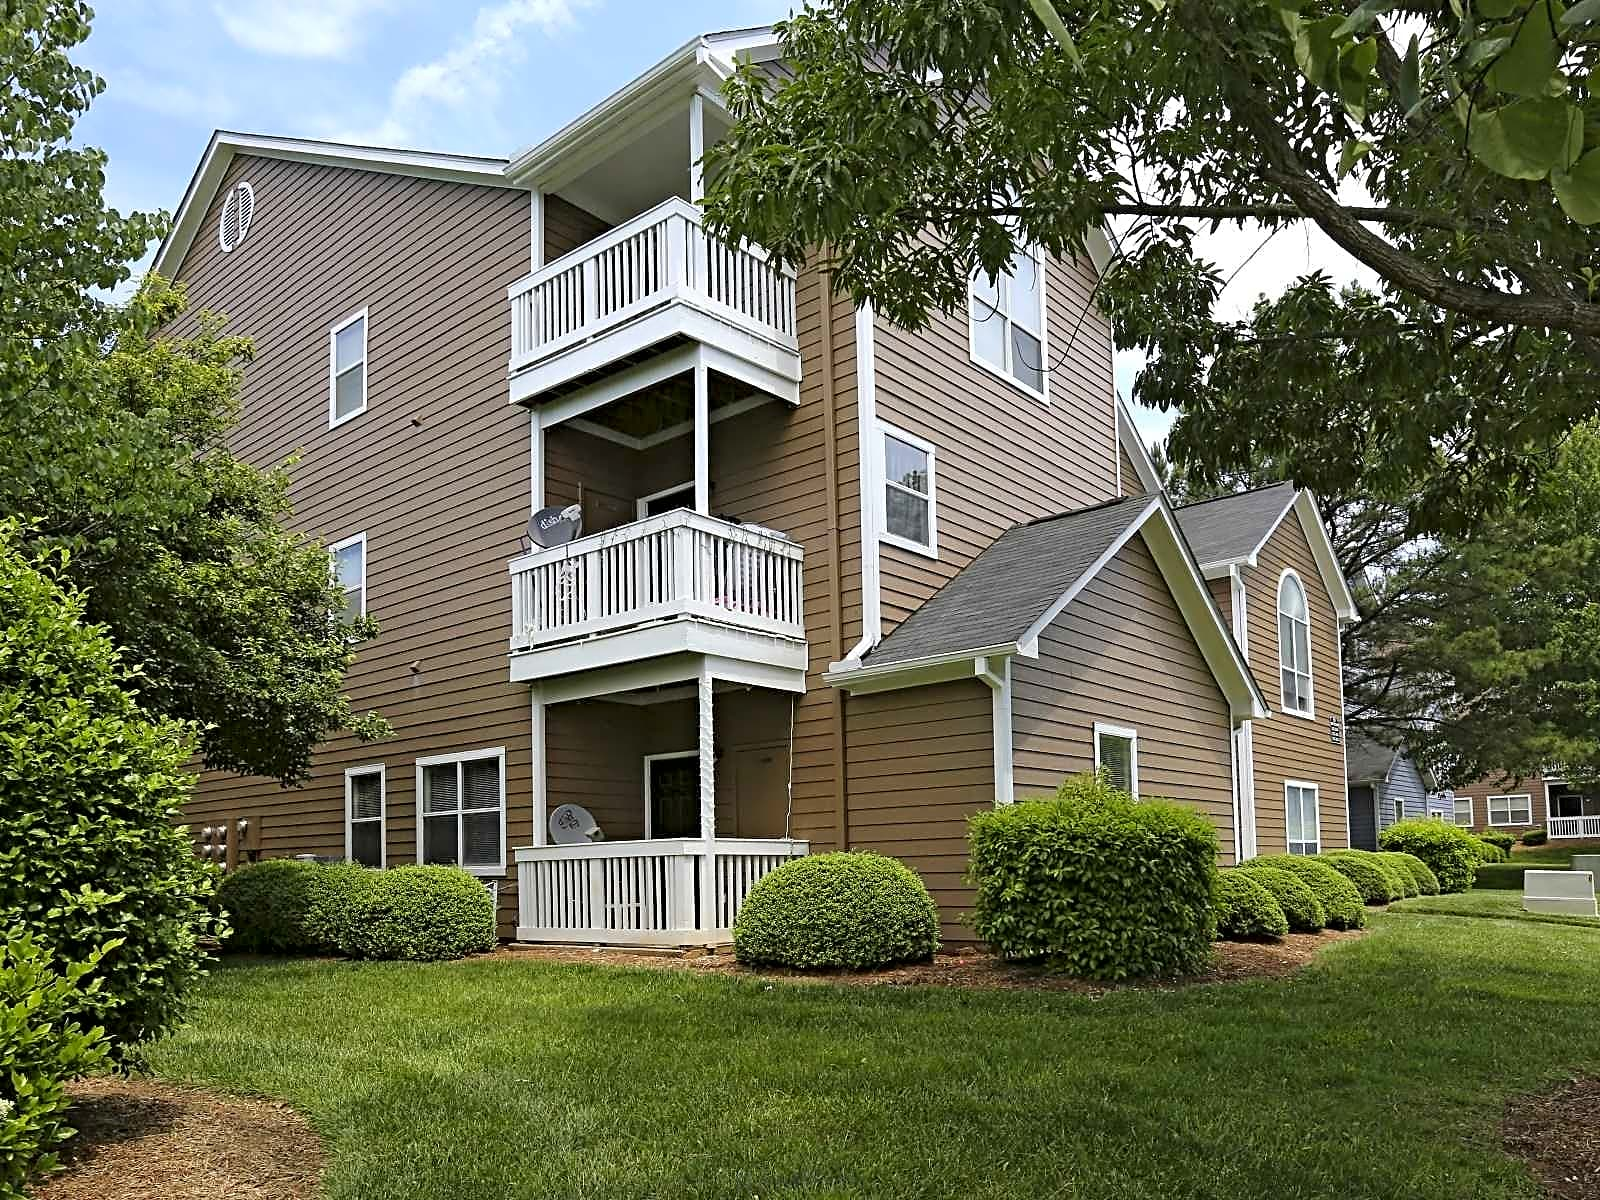 Photo: Cary Apartment for Rent - $765.00 / month; 1 Bd & 1 Ba